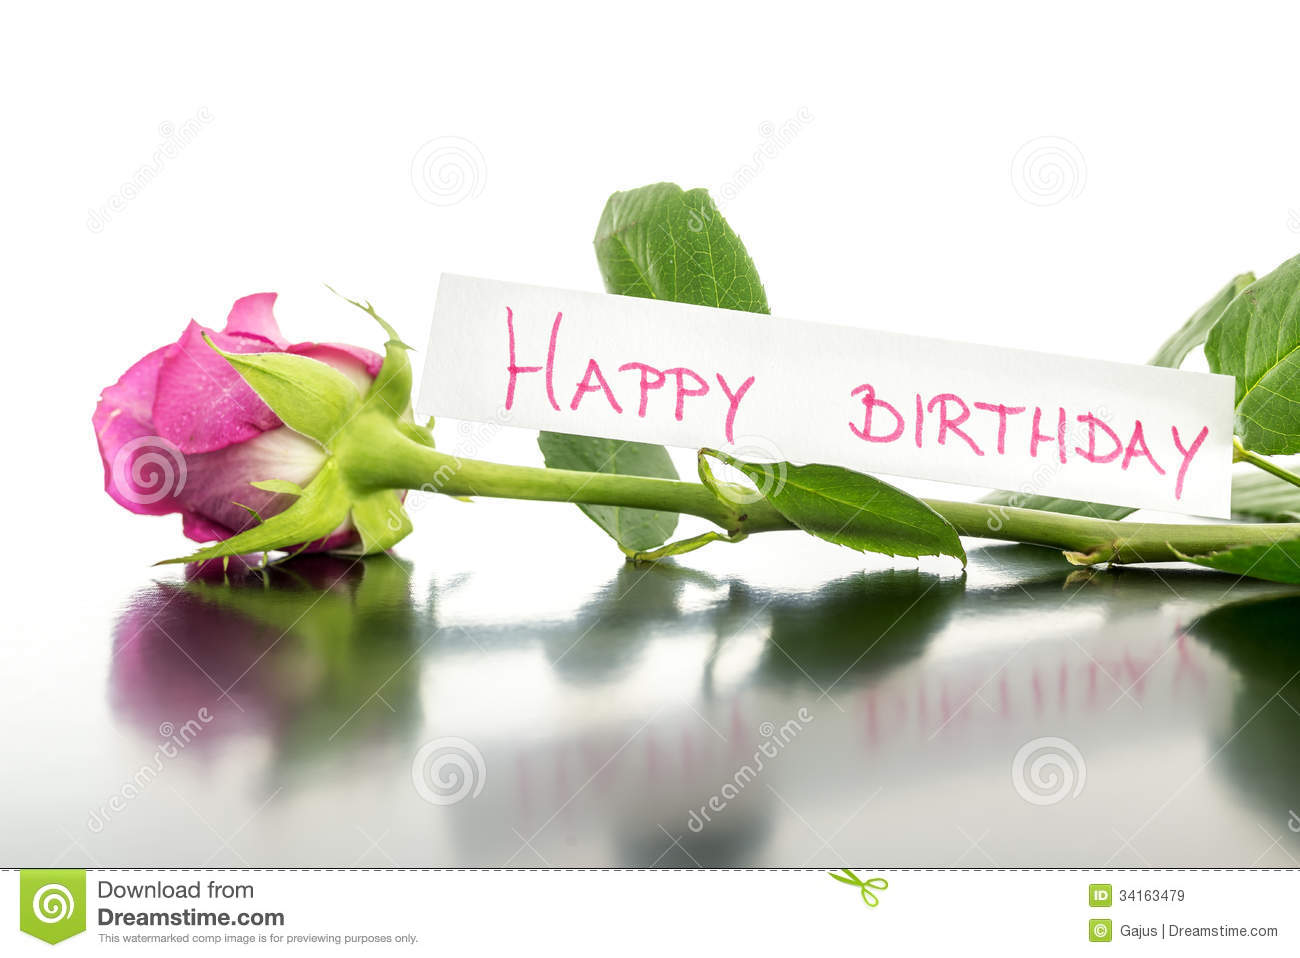 birthday flower pictures free  pivot media, Beautiful flower